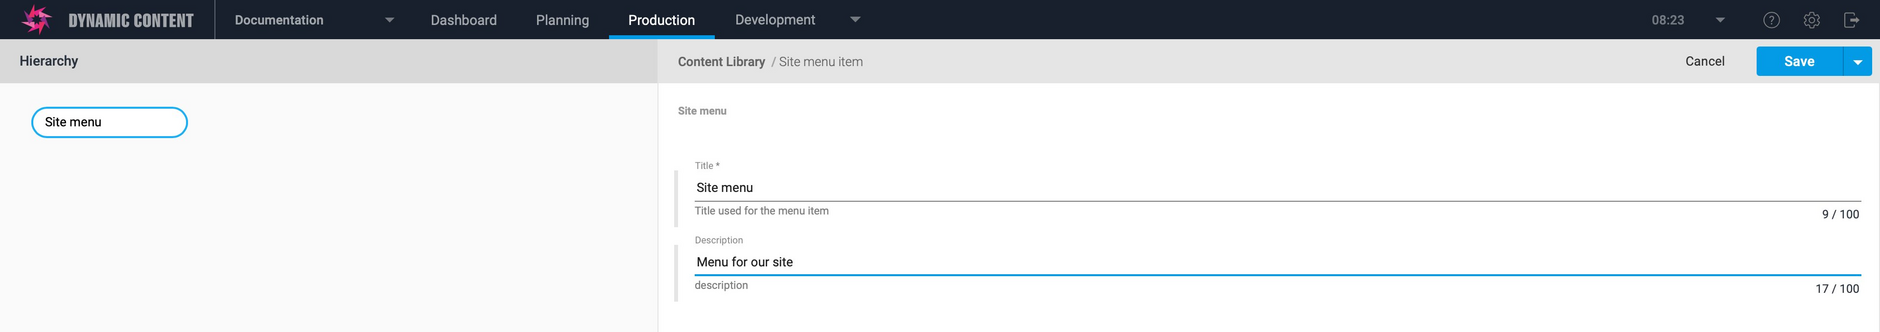 Adding the rest of the content item properties